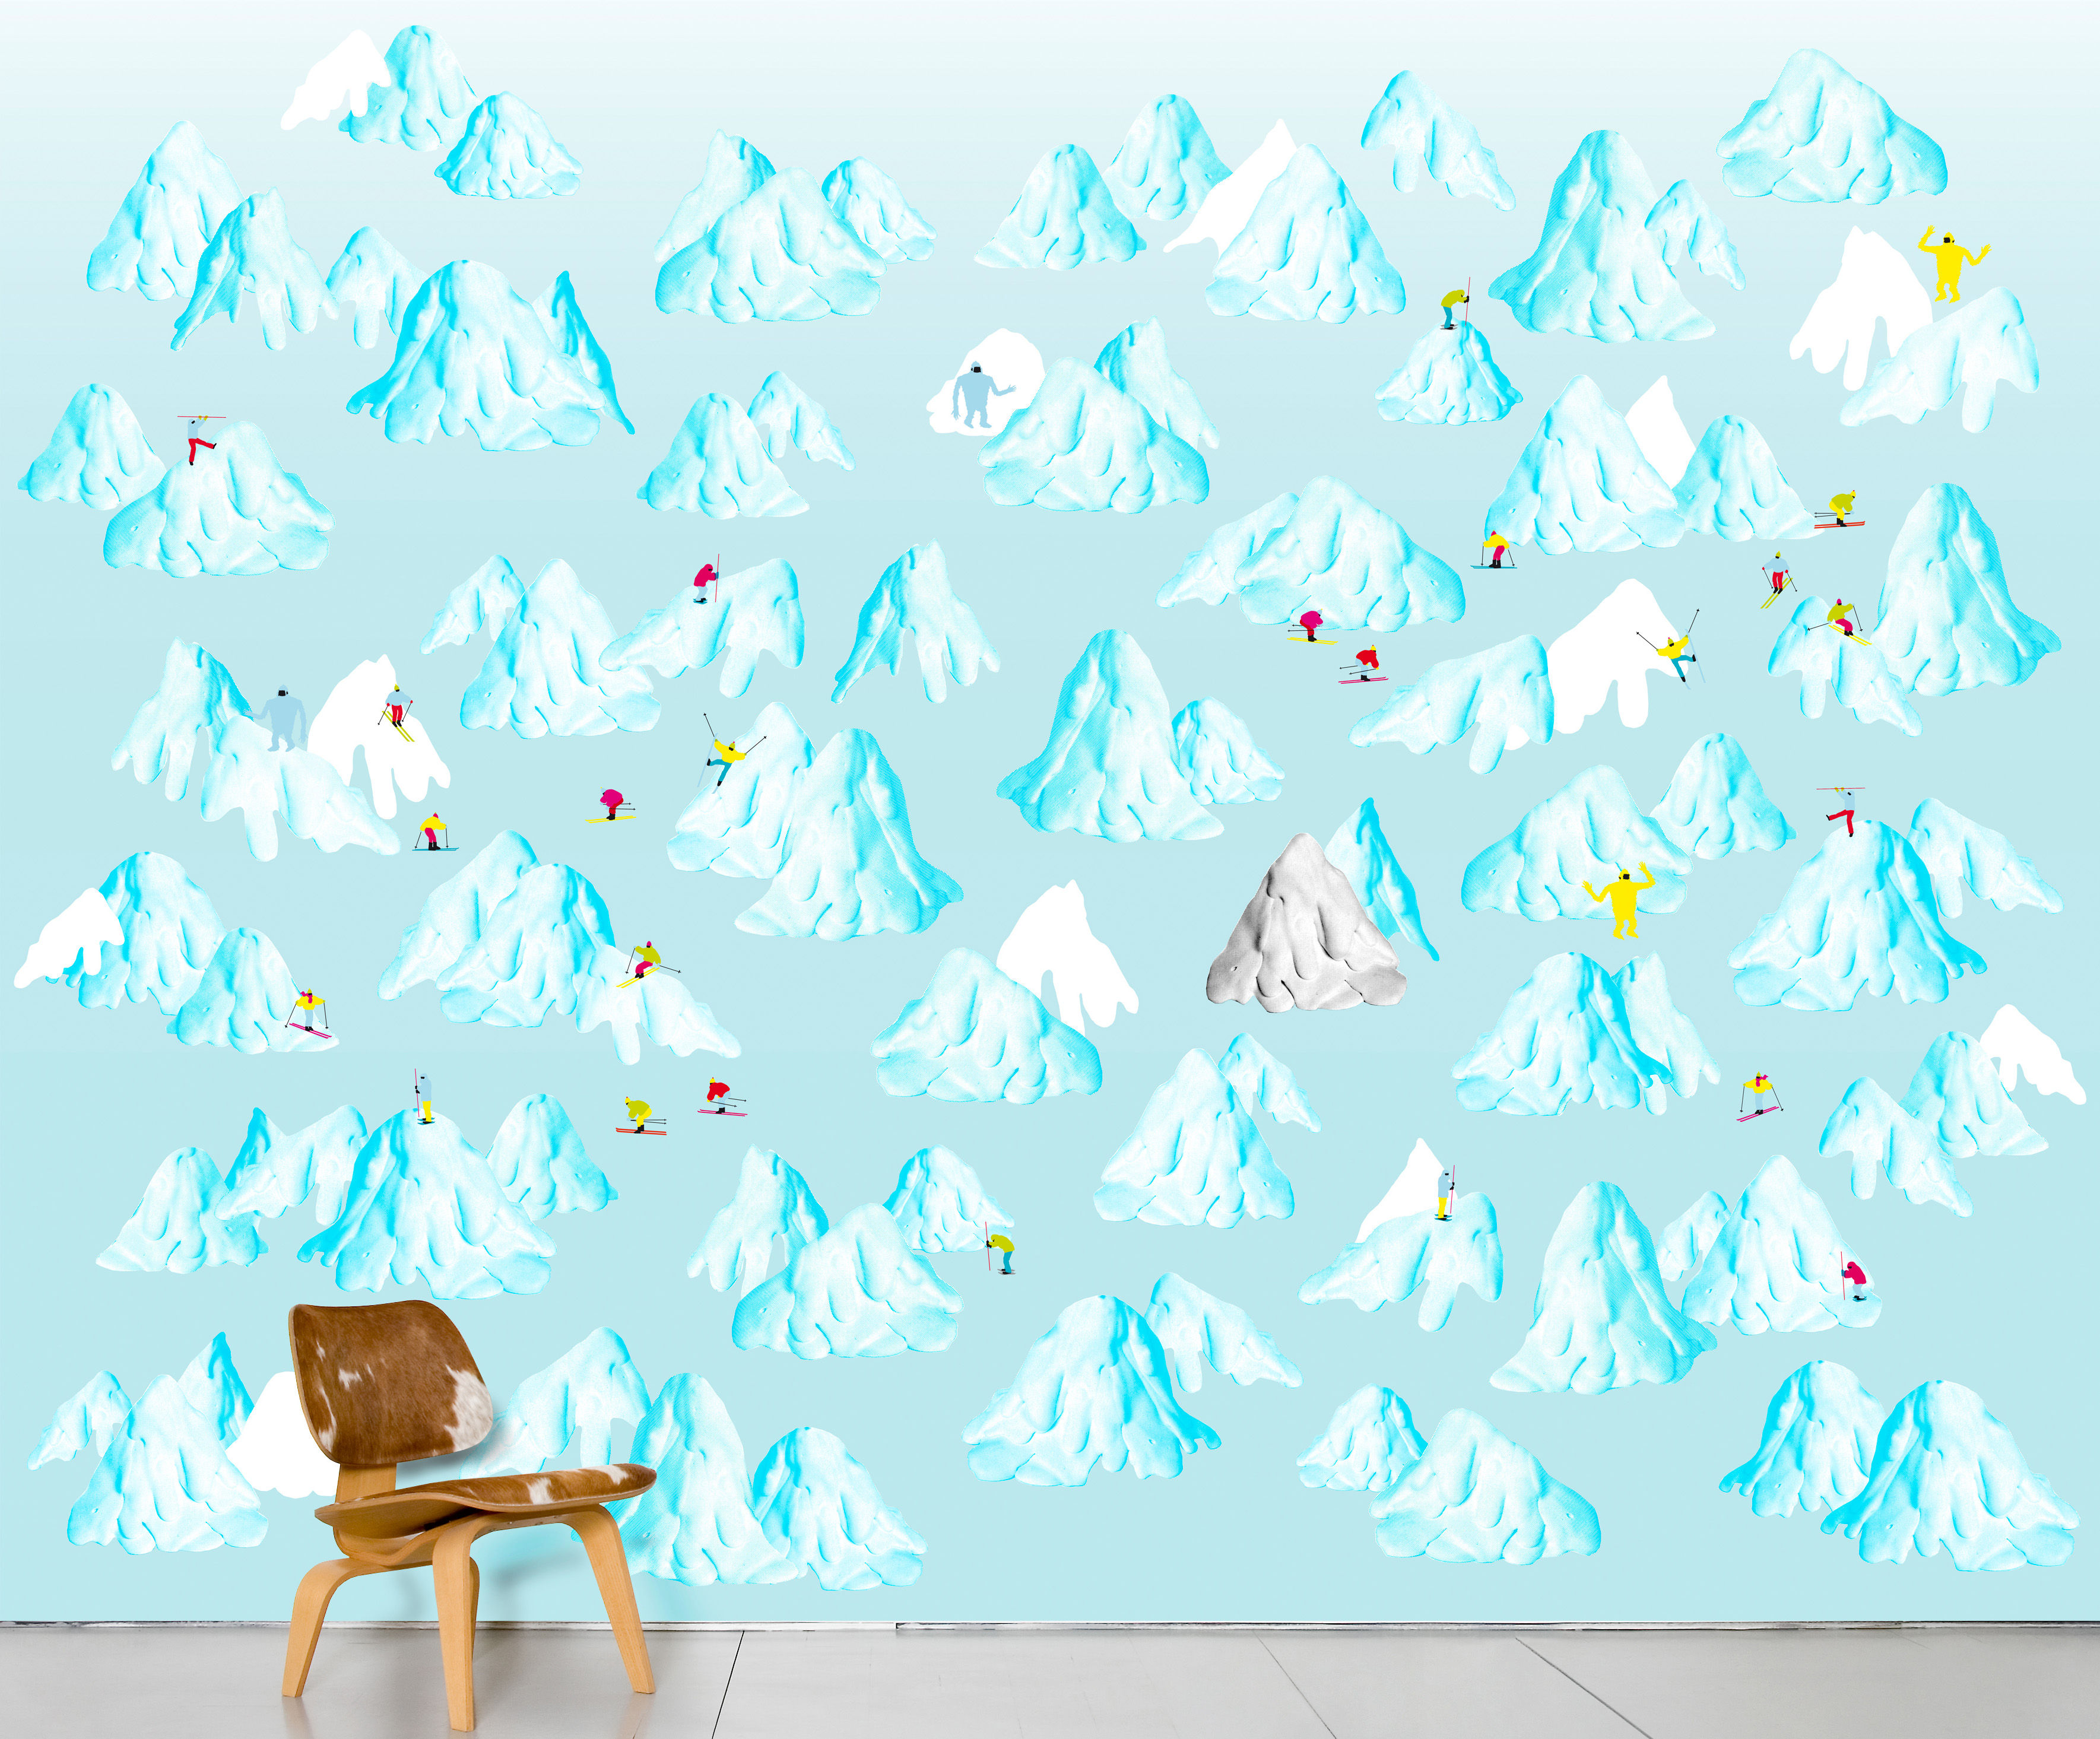 Decoration - Wallpaper & Wall Stickers - Schuss Panoramic Wallpaper by Domestic - Schuss - Intisse paper